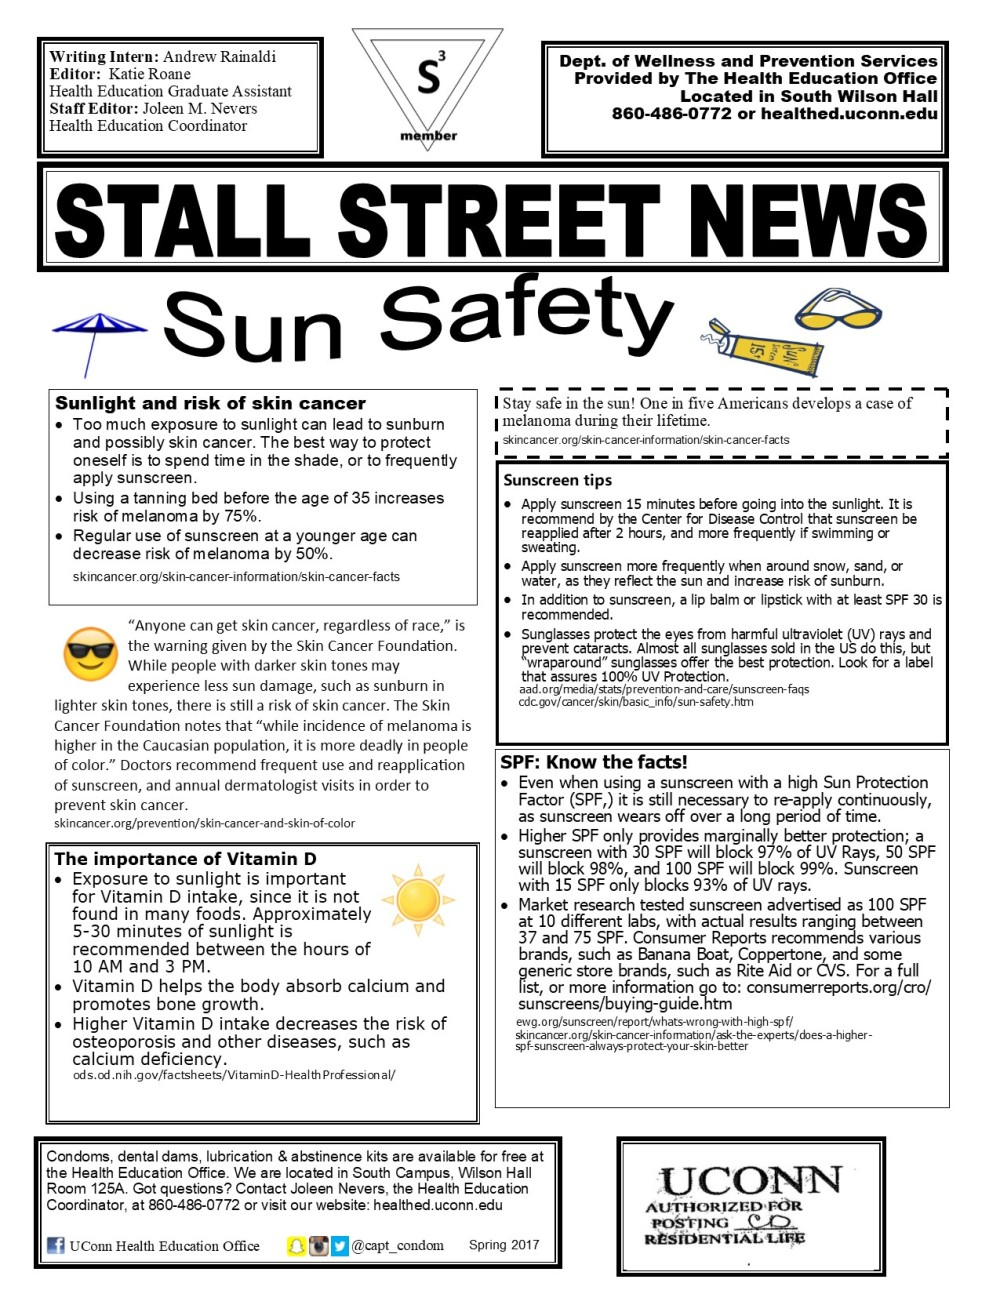 Sun Safety Seventh Draft.jpg